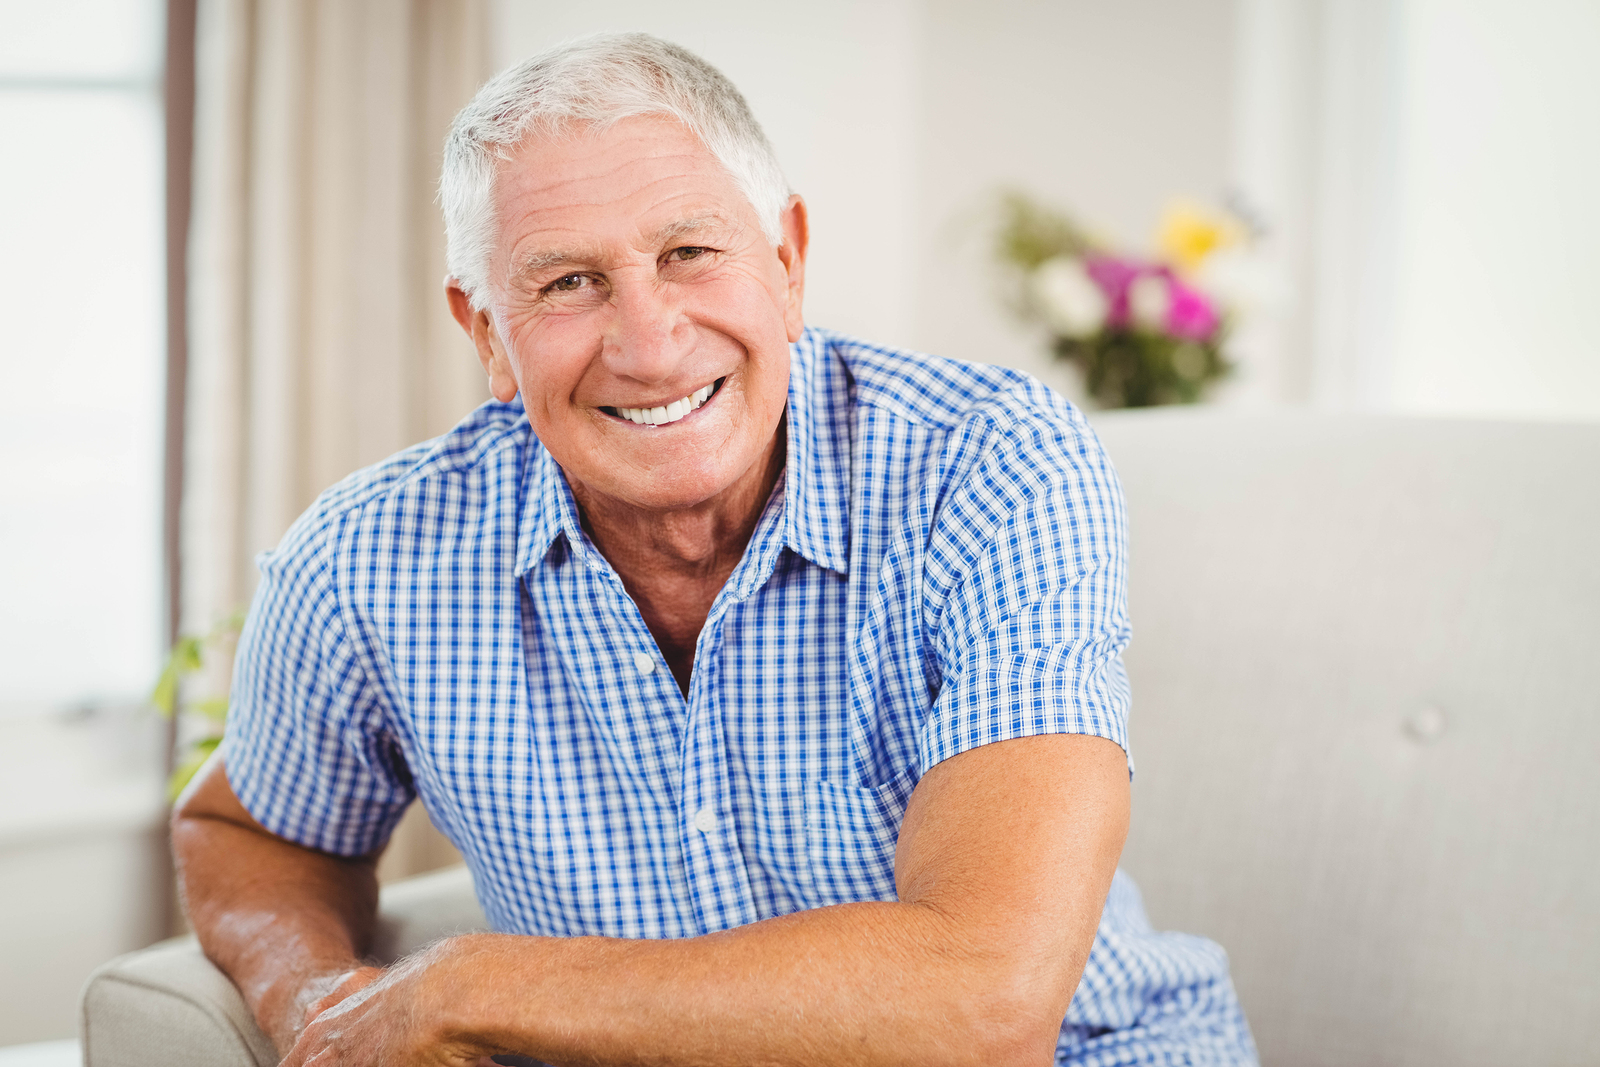 Image of senior man smiling in living room